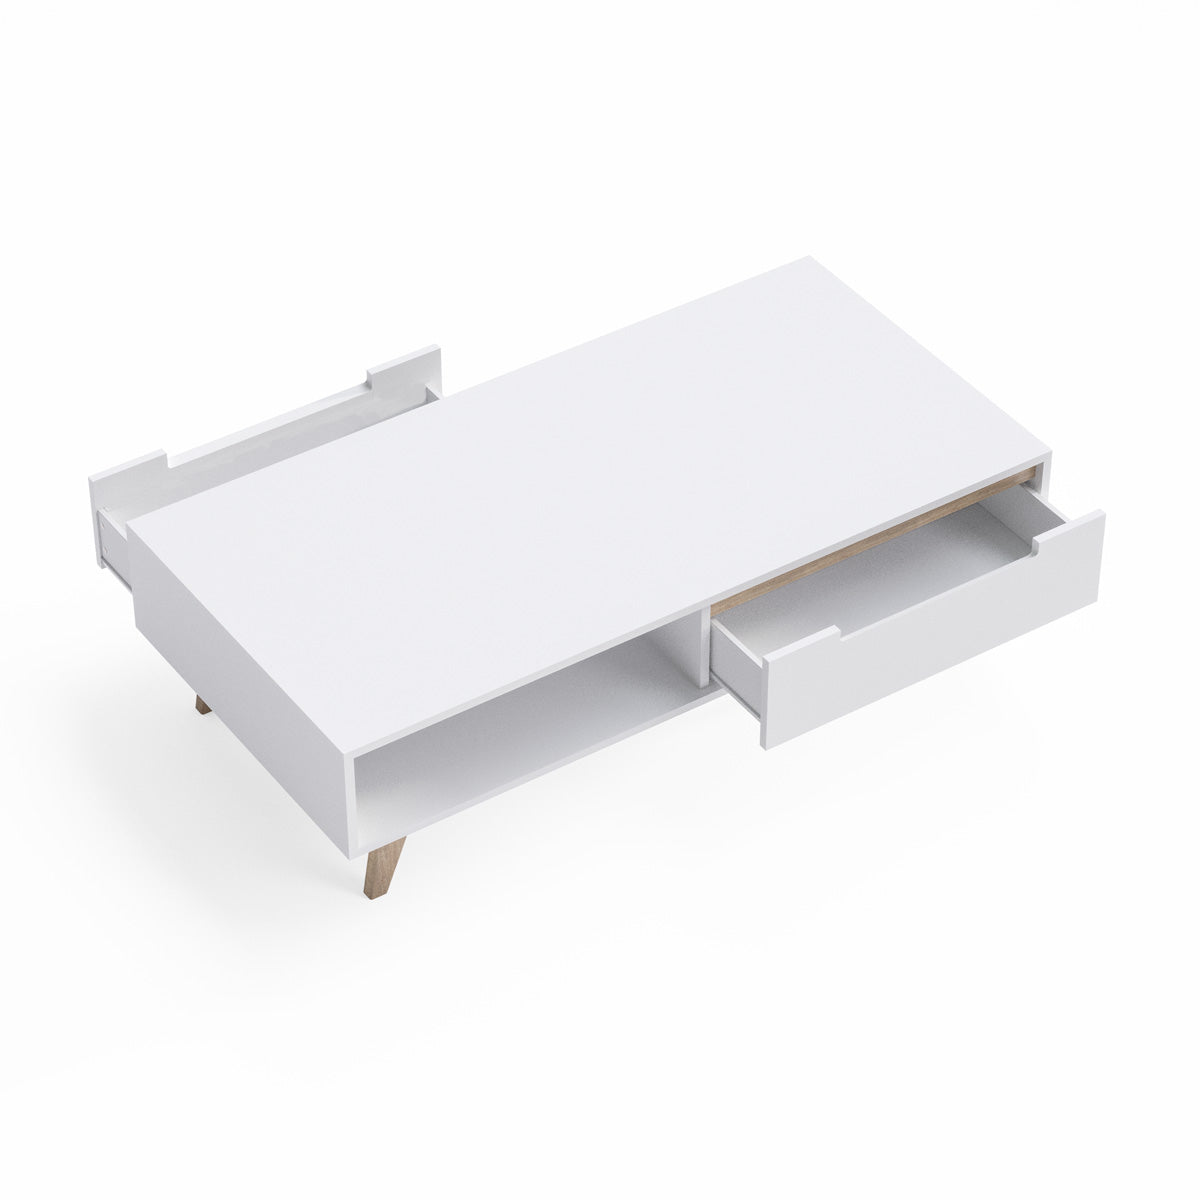 White Coffee Table with Solid Oak Legs (Olsen Collection)